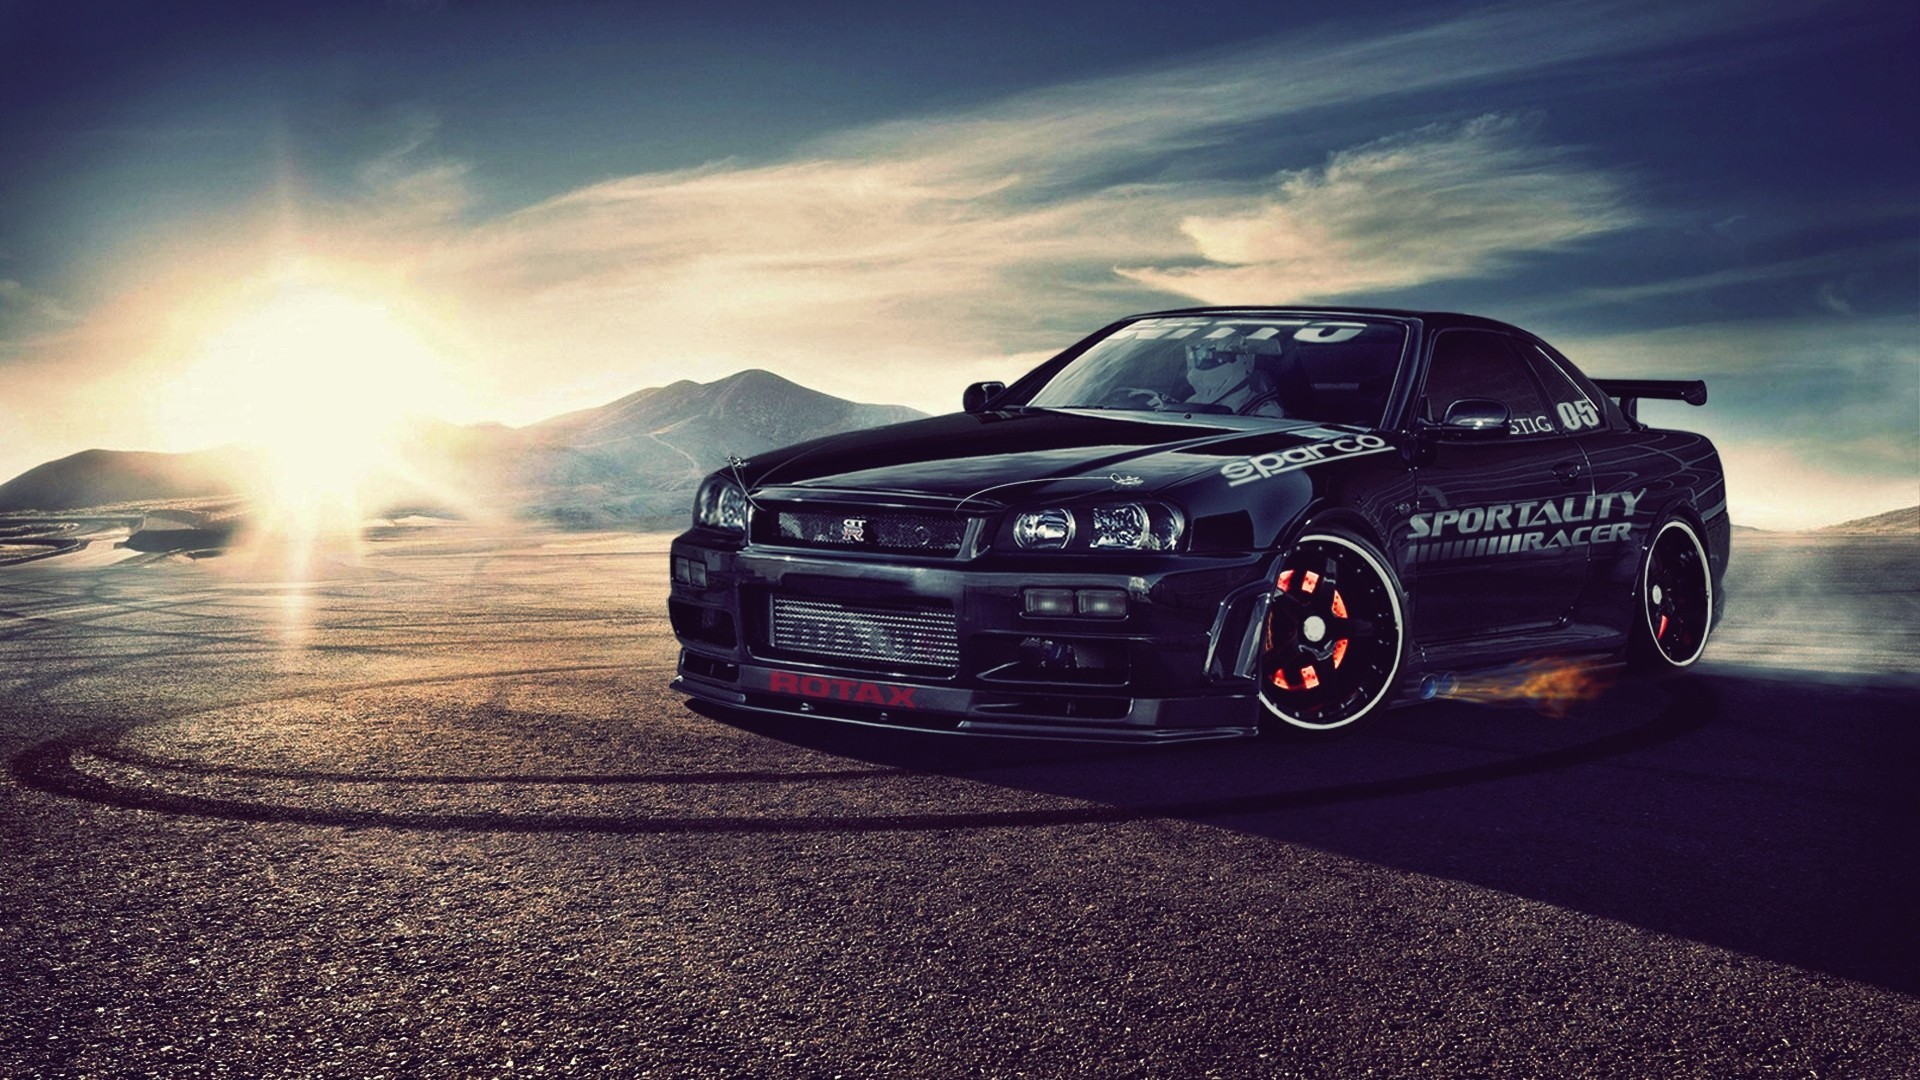 Wallpapers nissan nissan skyline r34 gt r